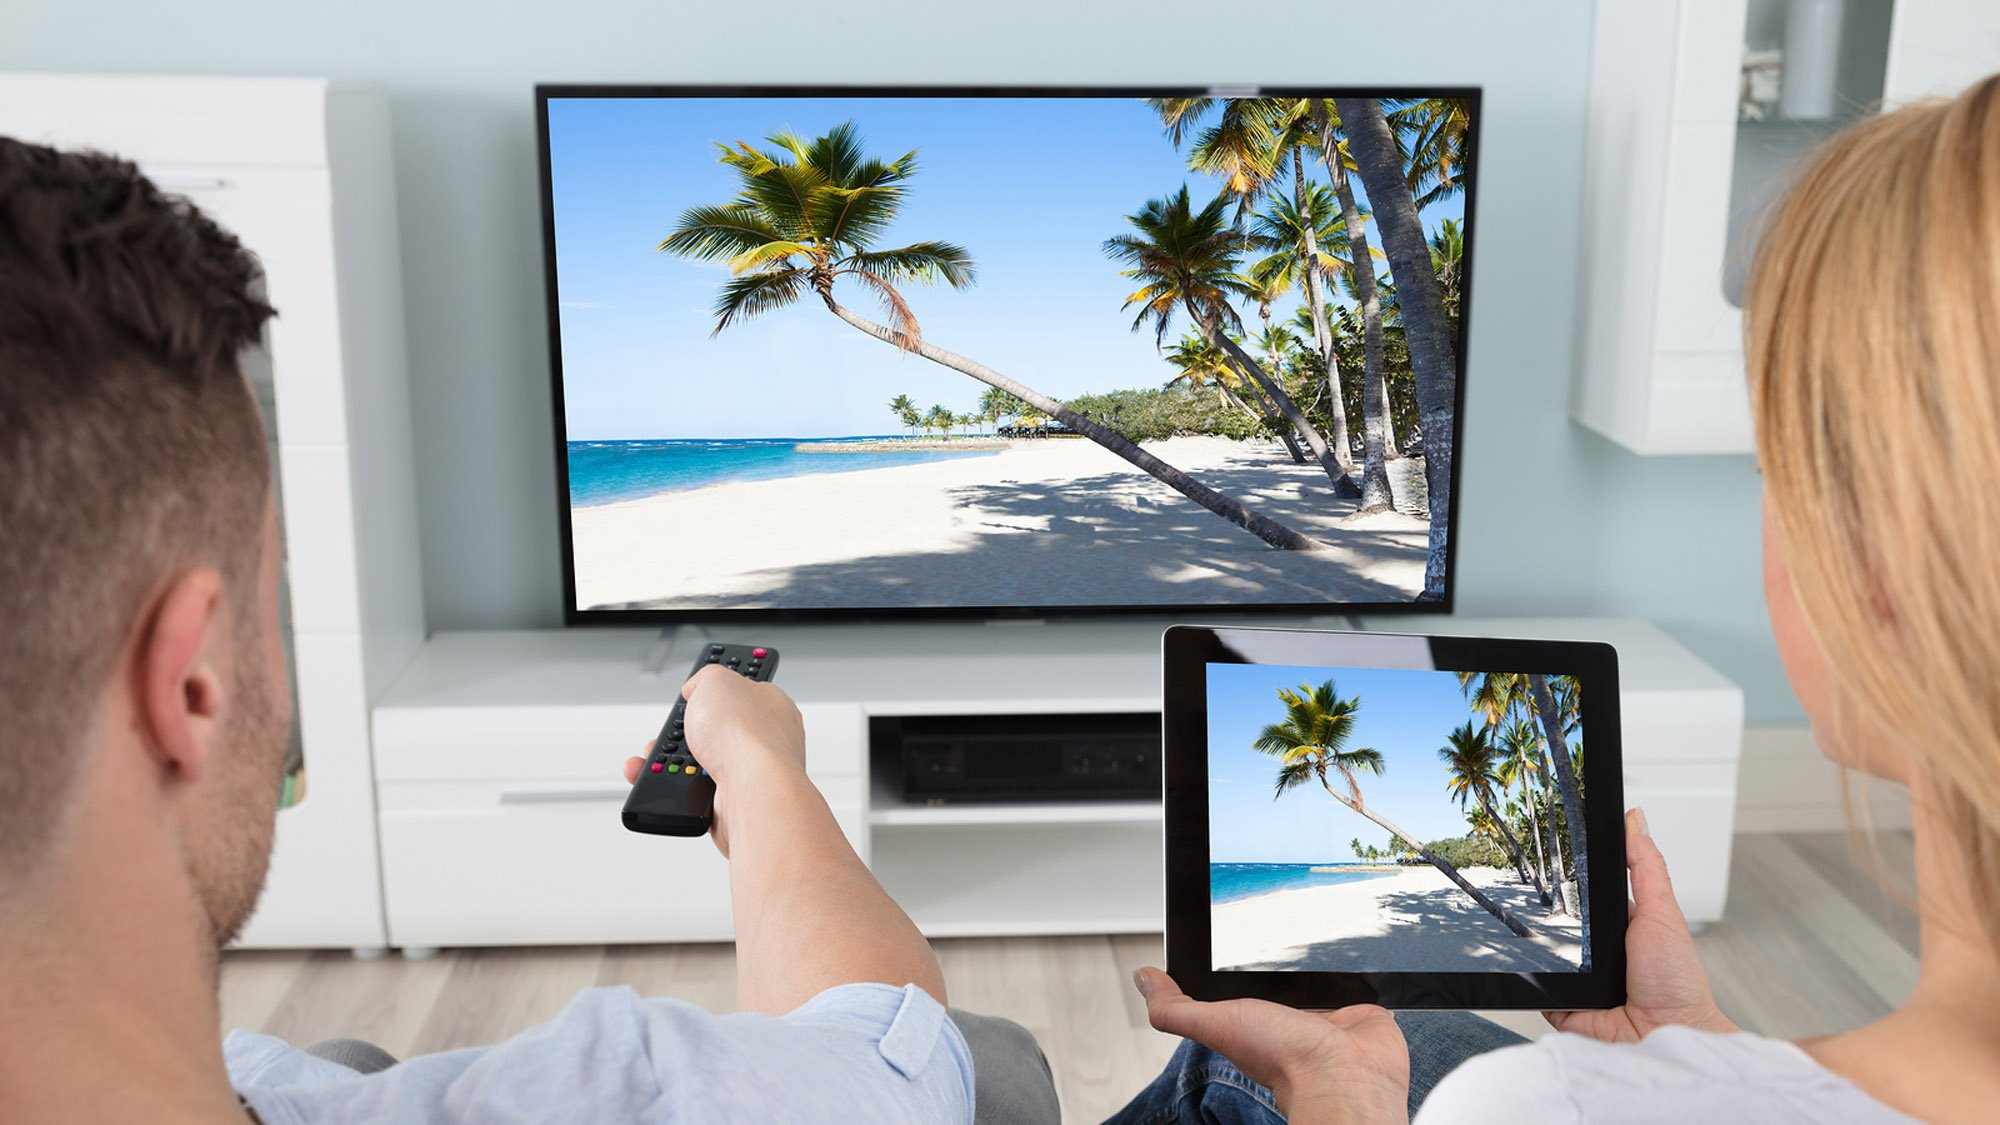 Connect Tablet To Tv >> How To Screen Mirror A Phone Tablet Or Laptop To A Tv Set Up Your